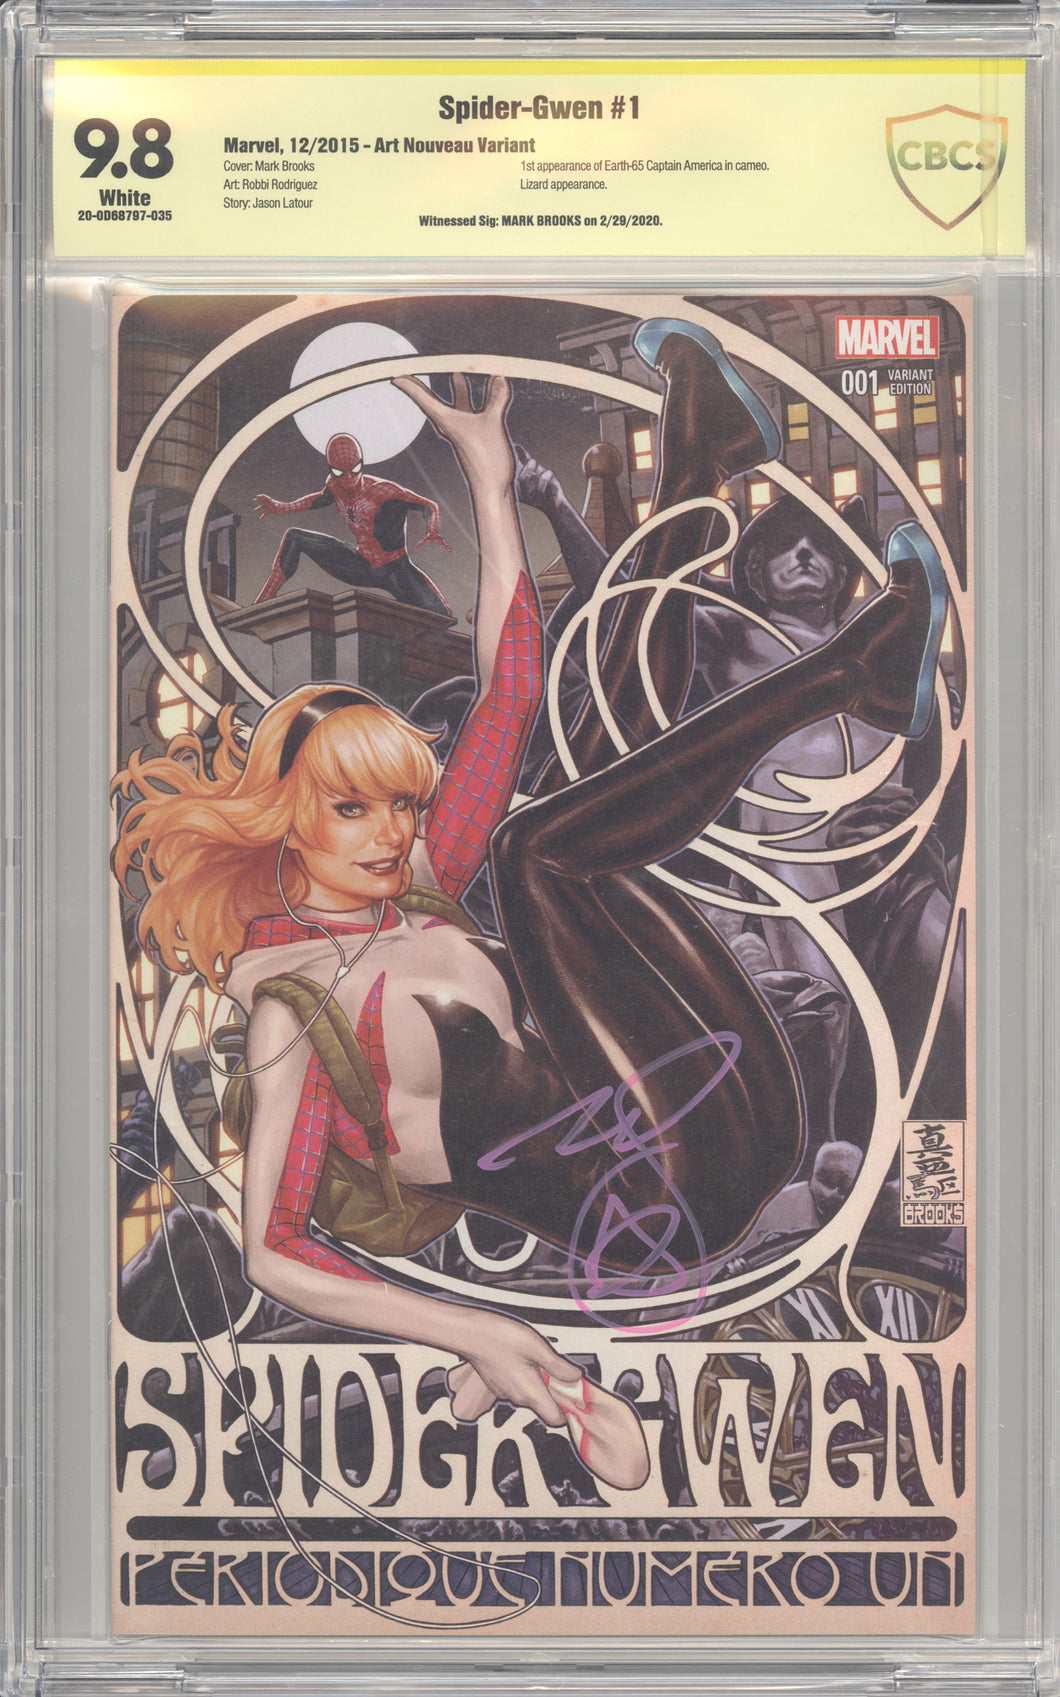 Spider-Gwen #1 Brooks Variant CBCS 9.8 signed by Brooks